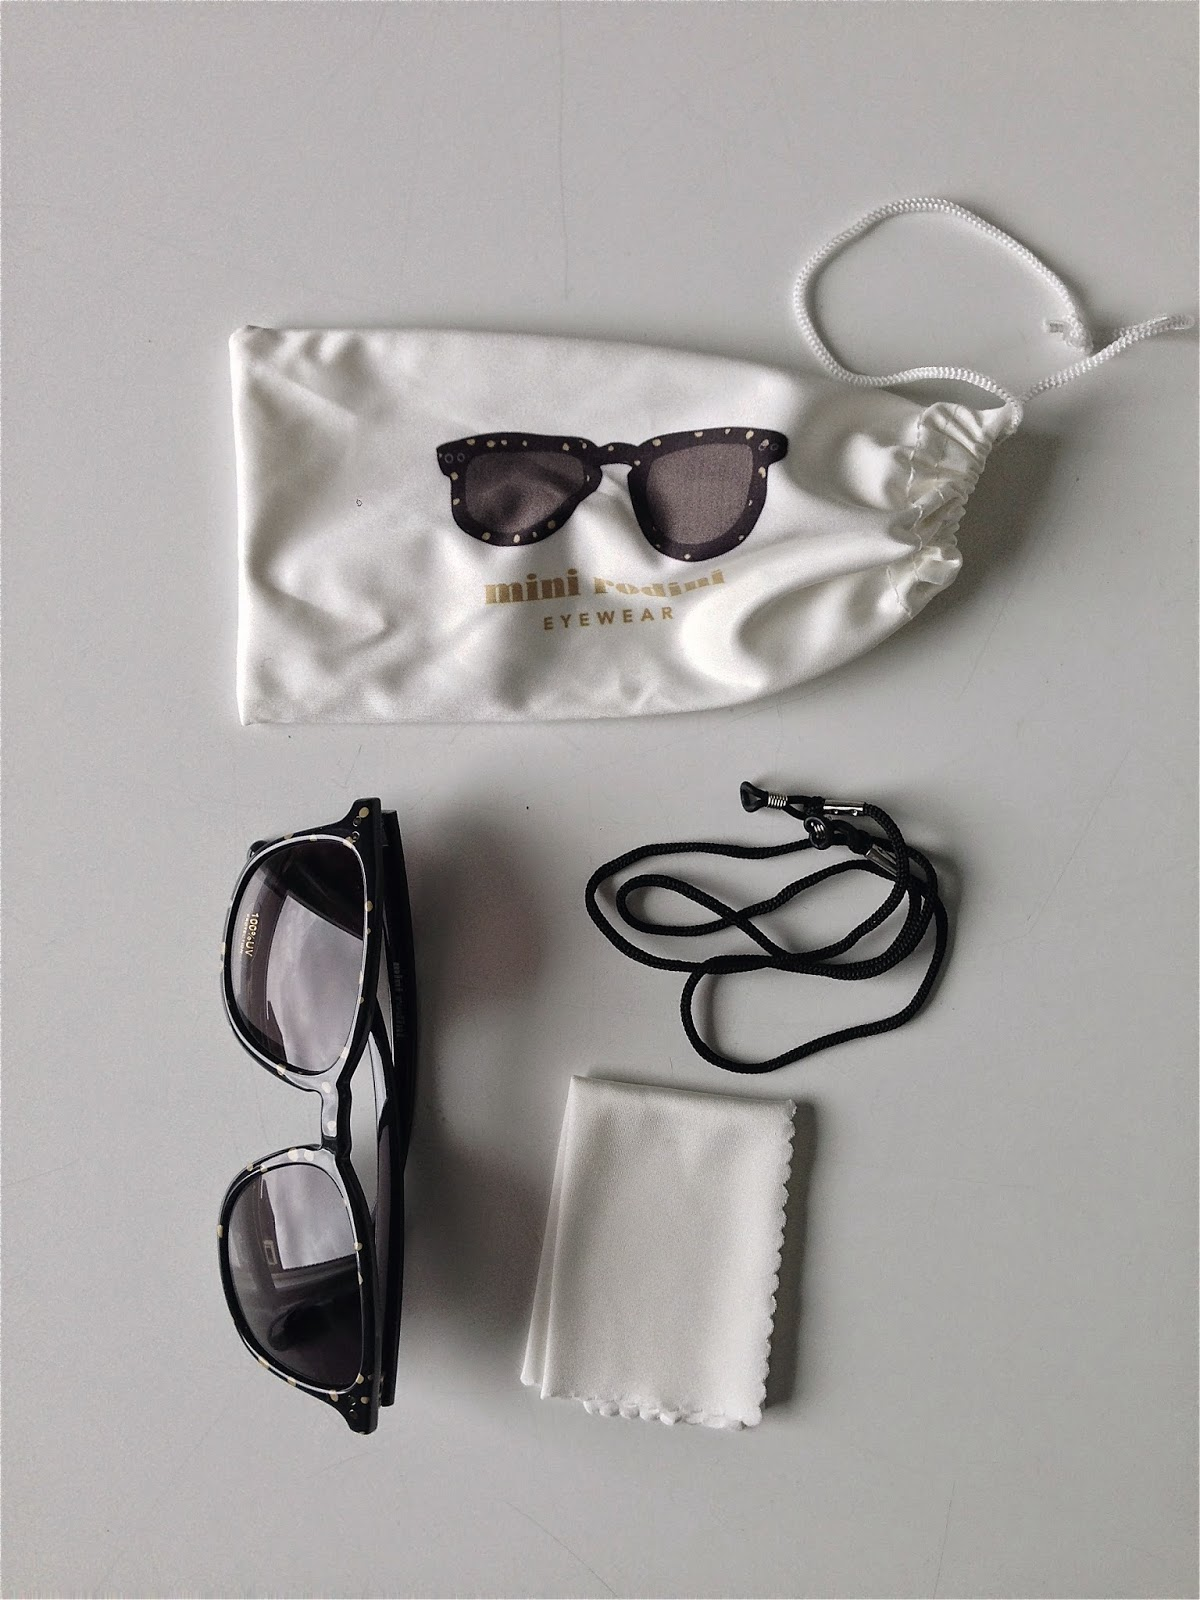 Mini Rodini ss15, spot sunglasses